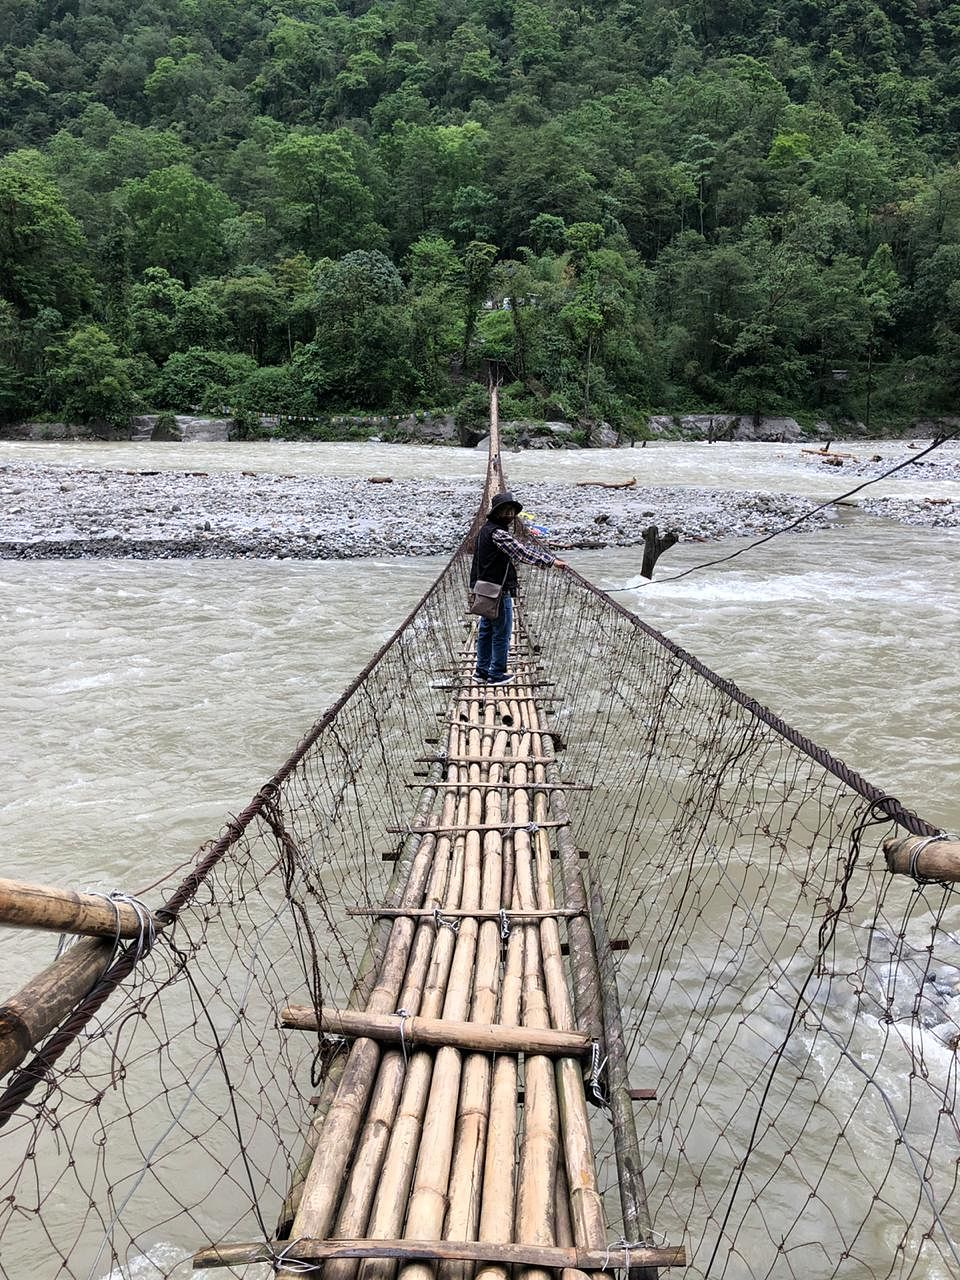 In its fresh directives, the High Court of Sikkim on June 20 directed the State government to 'regularly monitor the condition of the temporary bamboo cane bridge'